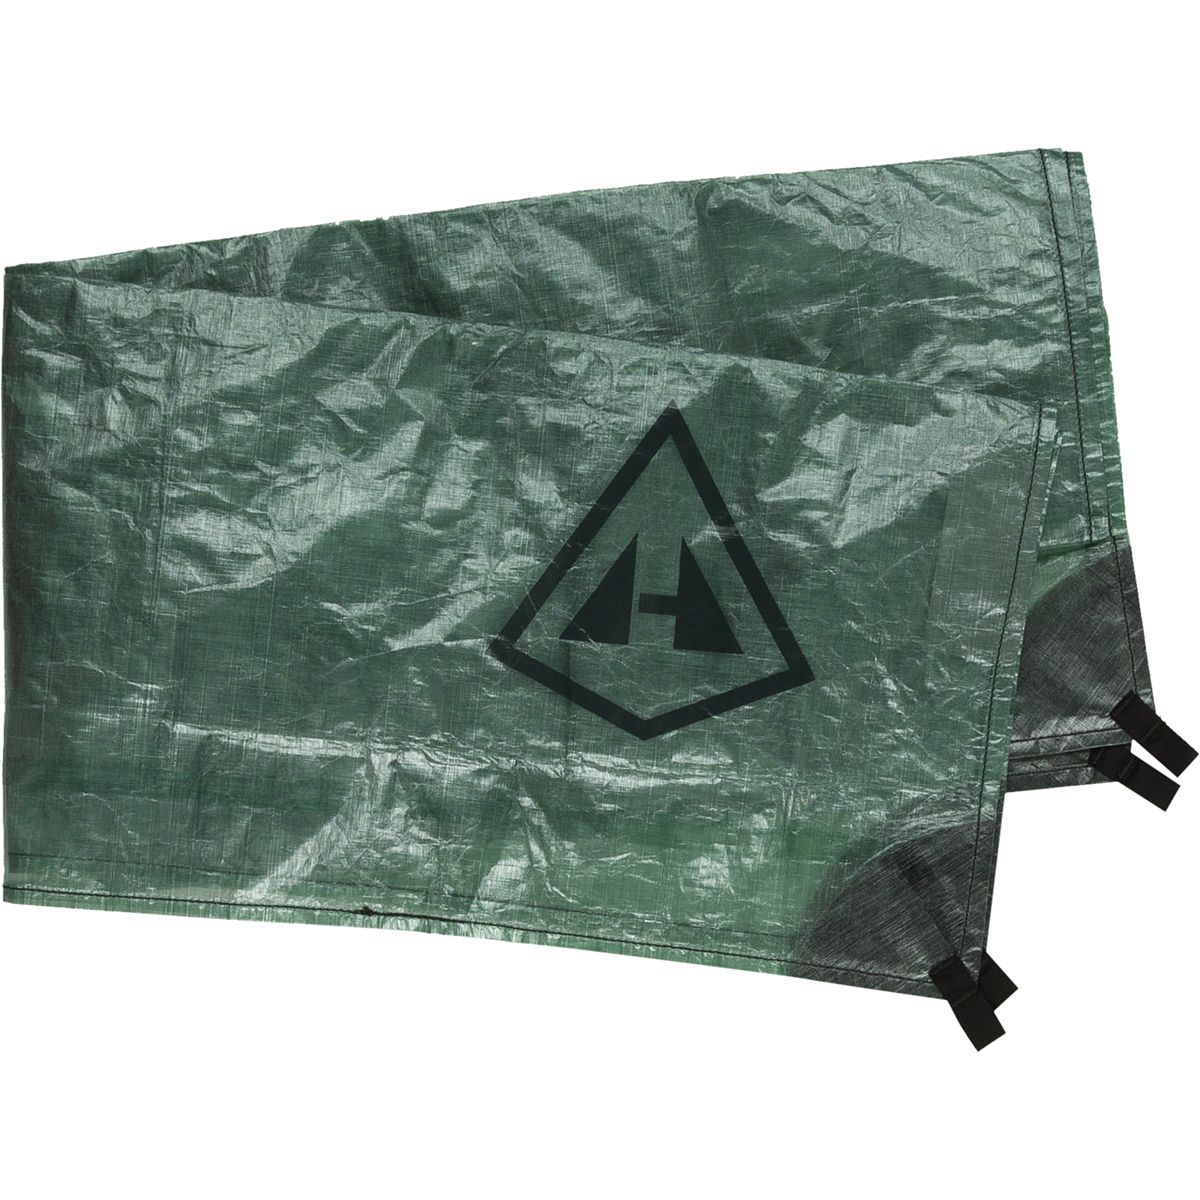 photo: Hyperlite Mountain Gear Ground Cloth footprint